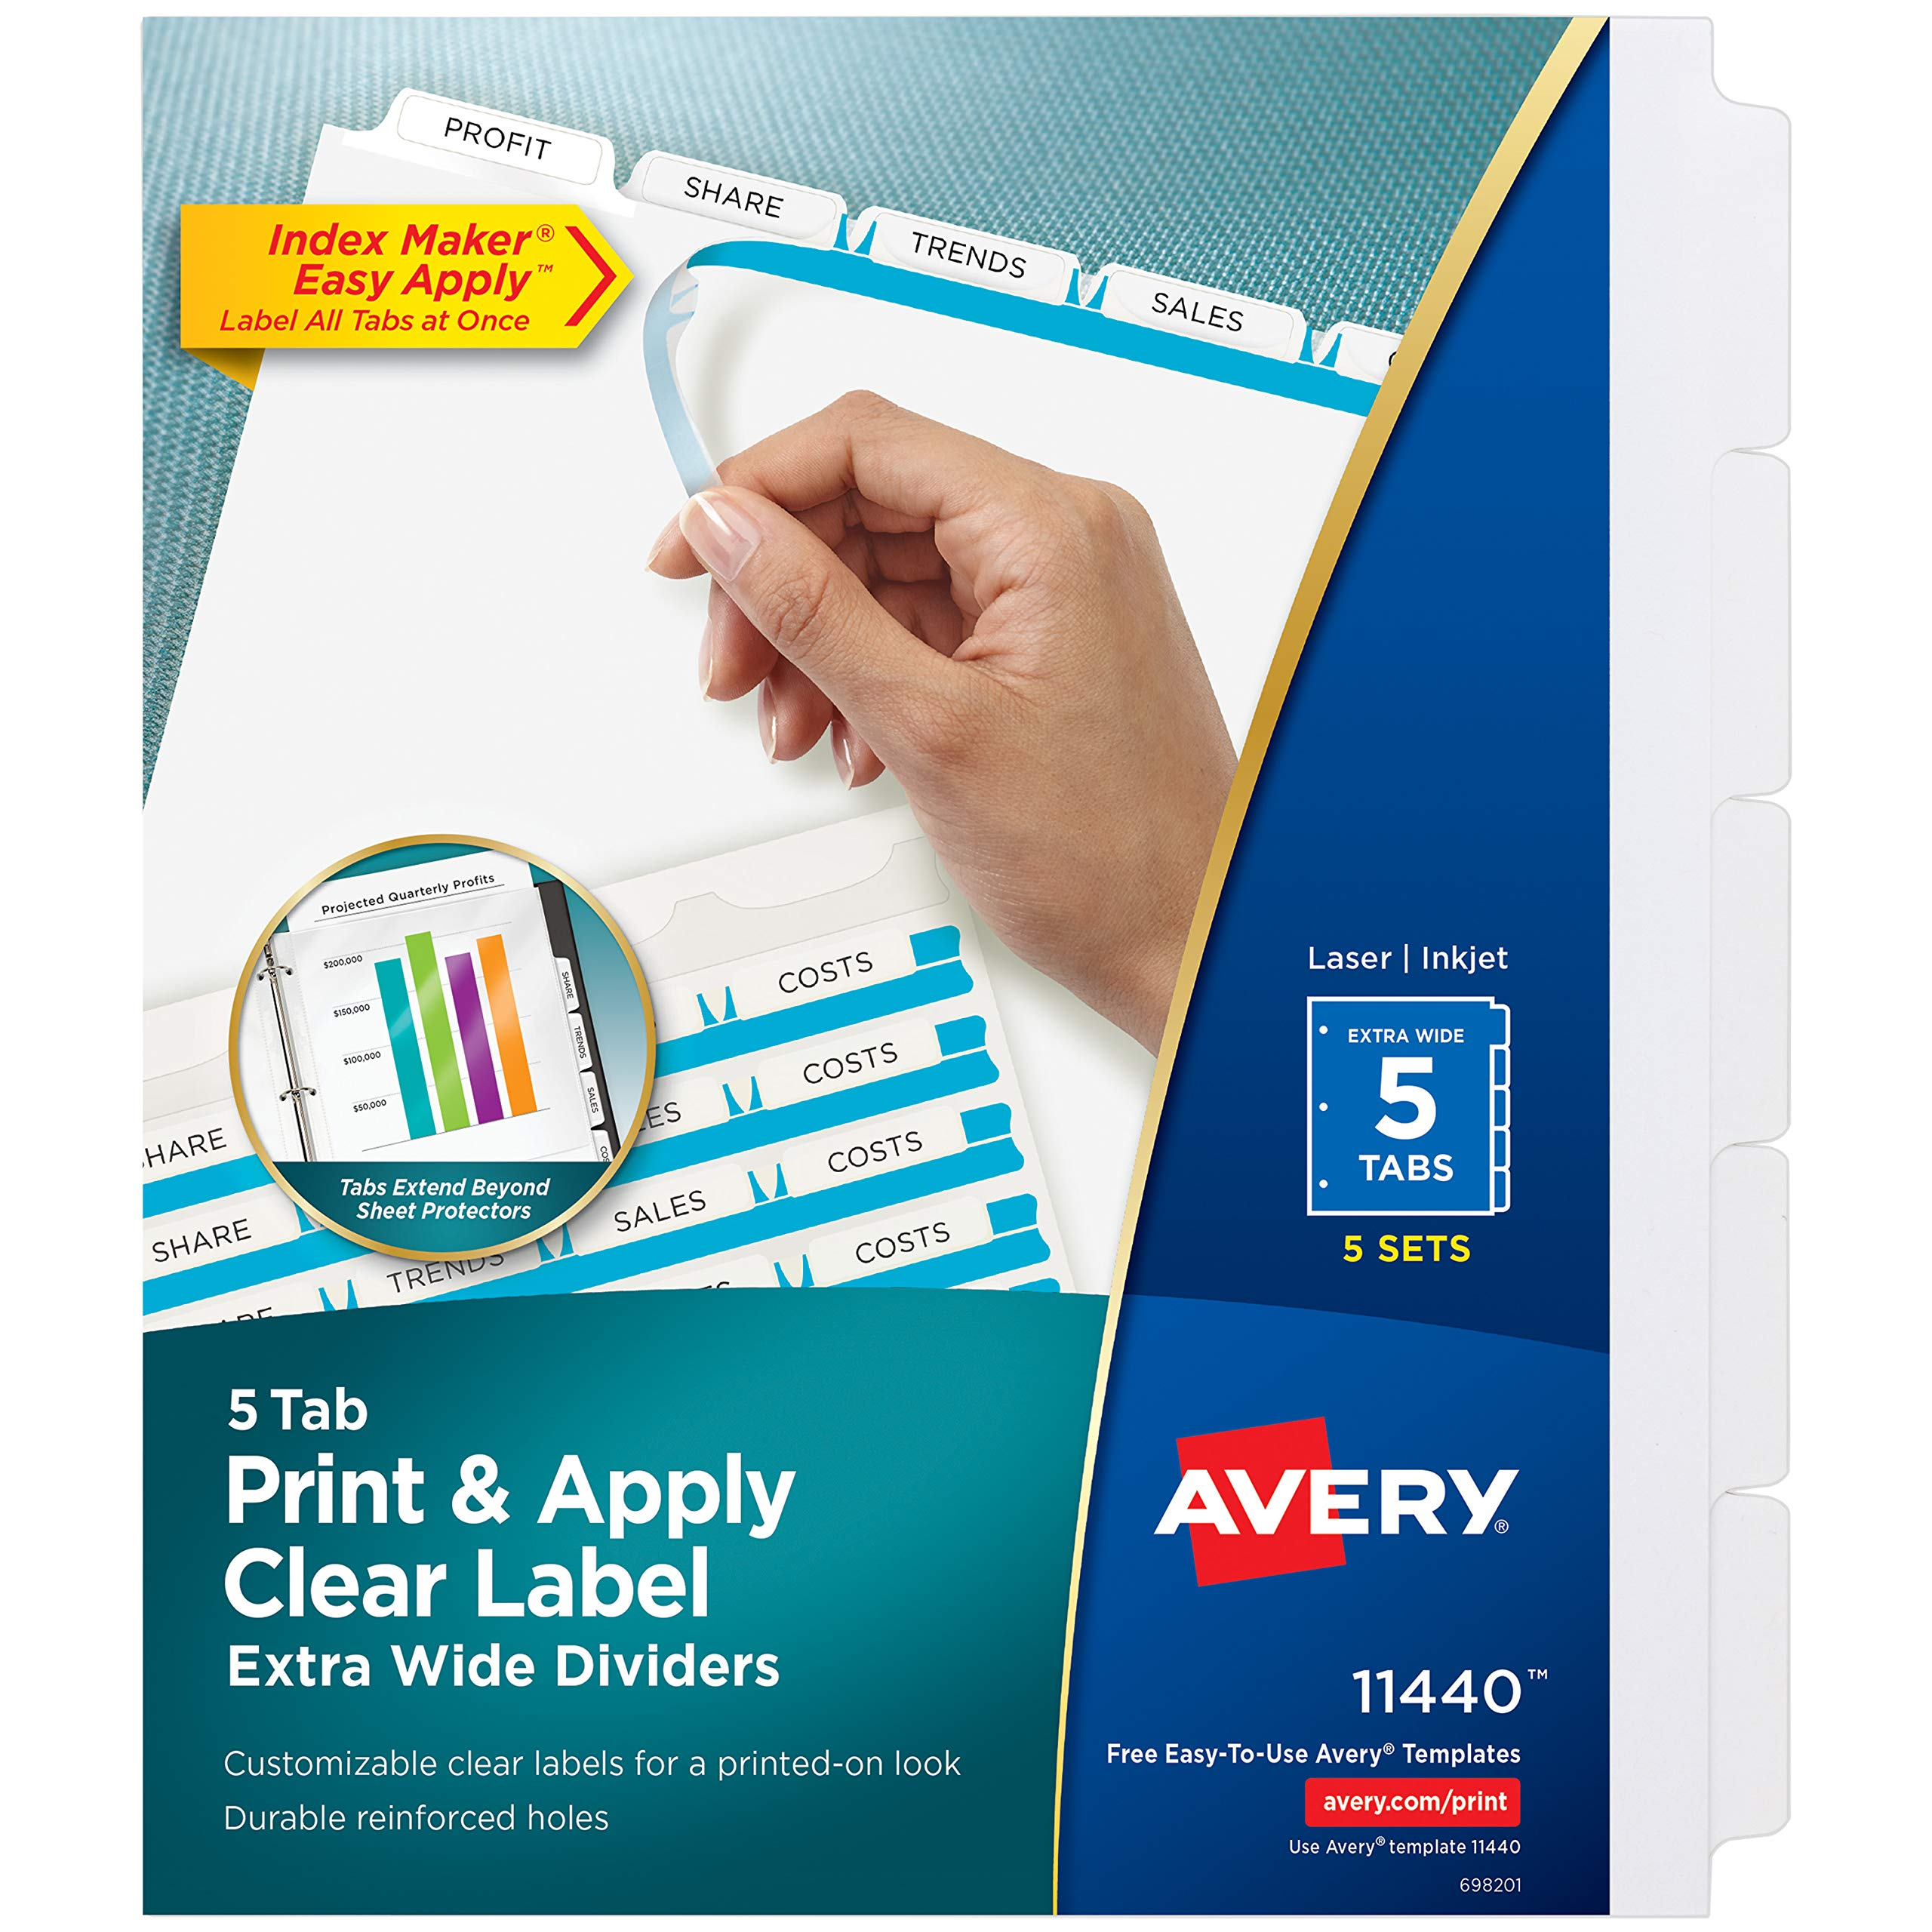 Avery 5-Tab Extra Wide Binder Dividers, Easy Print & Apply Clear Label Strip, Index Maker,White, 5 Sets (11440) by Avery